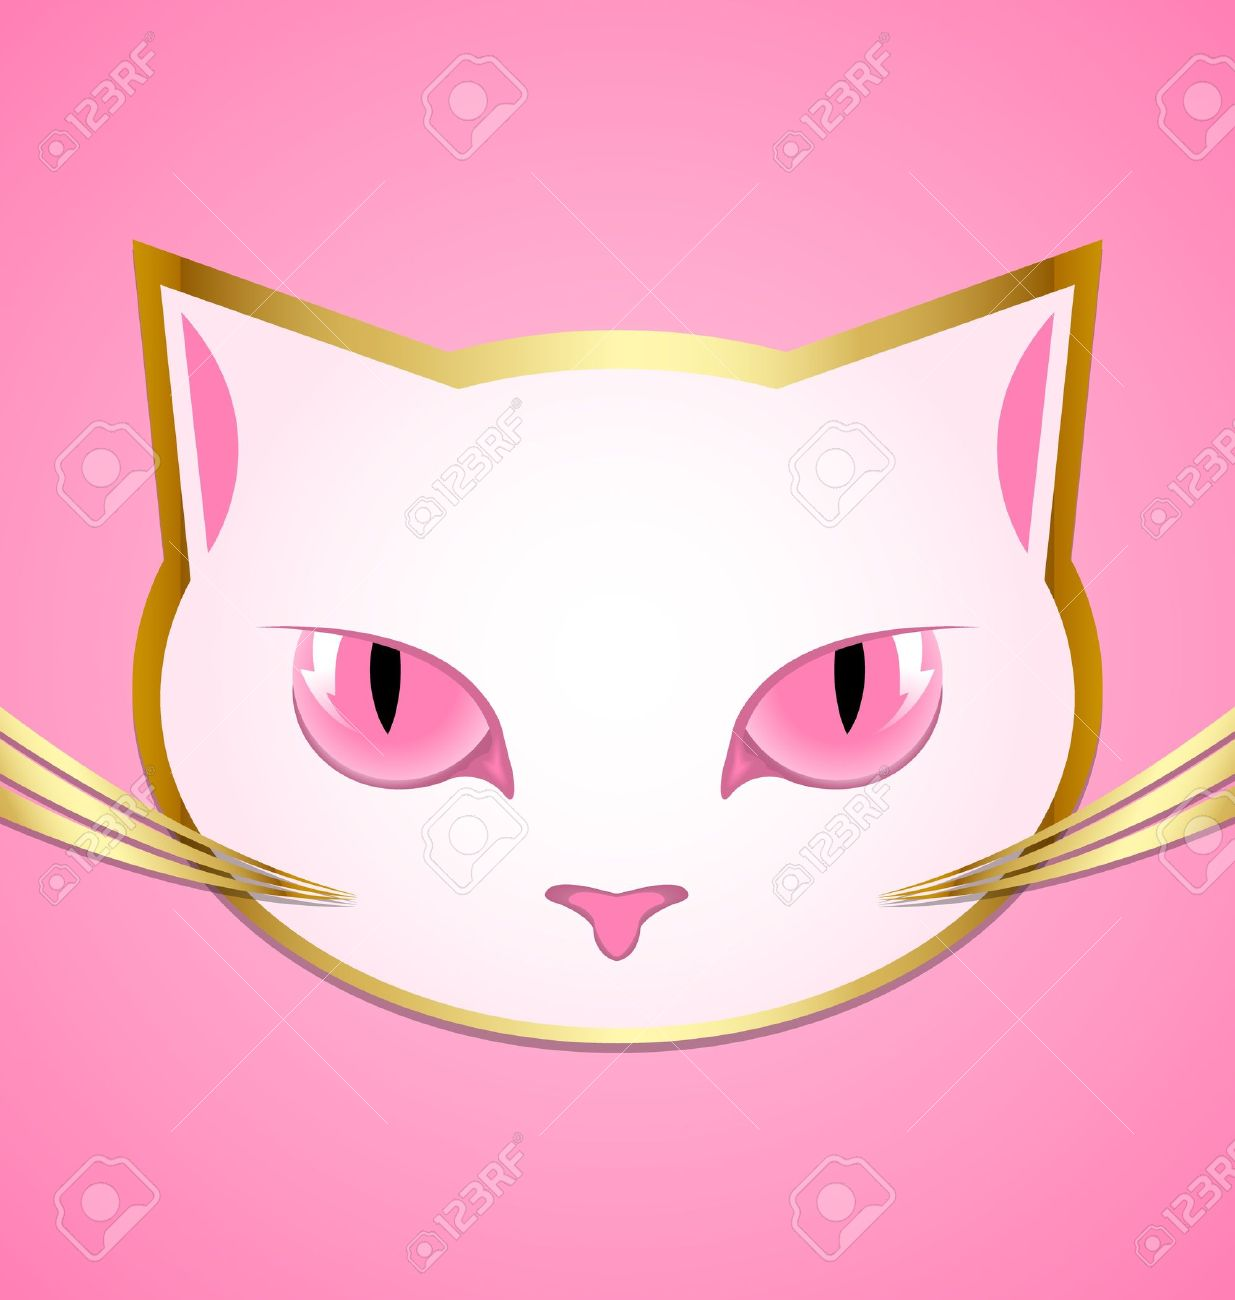 Golden and white cat head isolated on pink background Stock Vector - 15998666